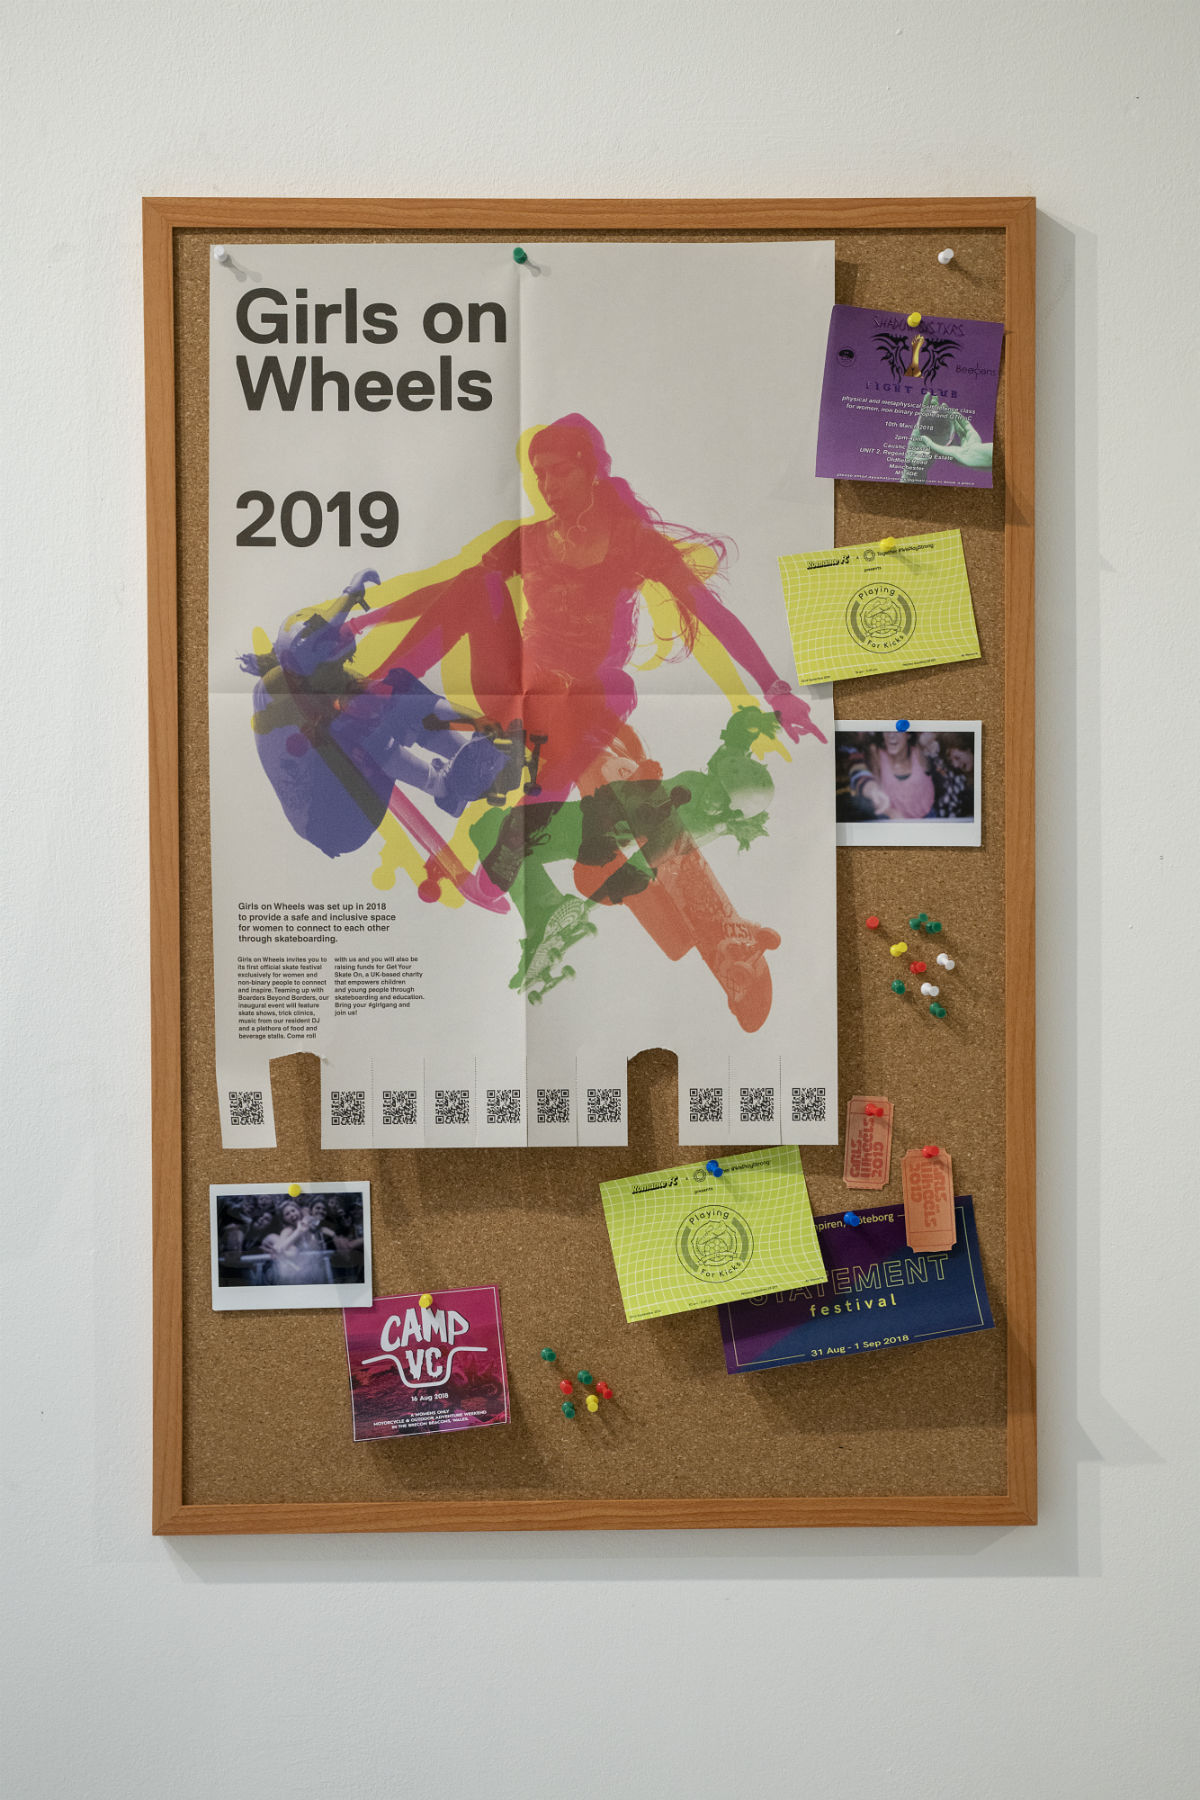 Girls On Wheels 2019 poster